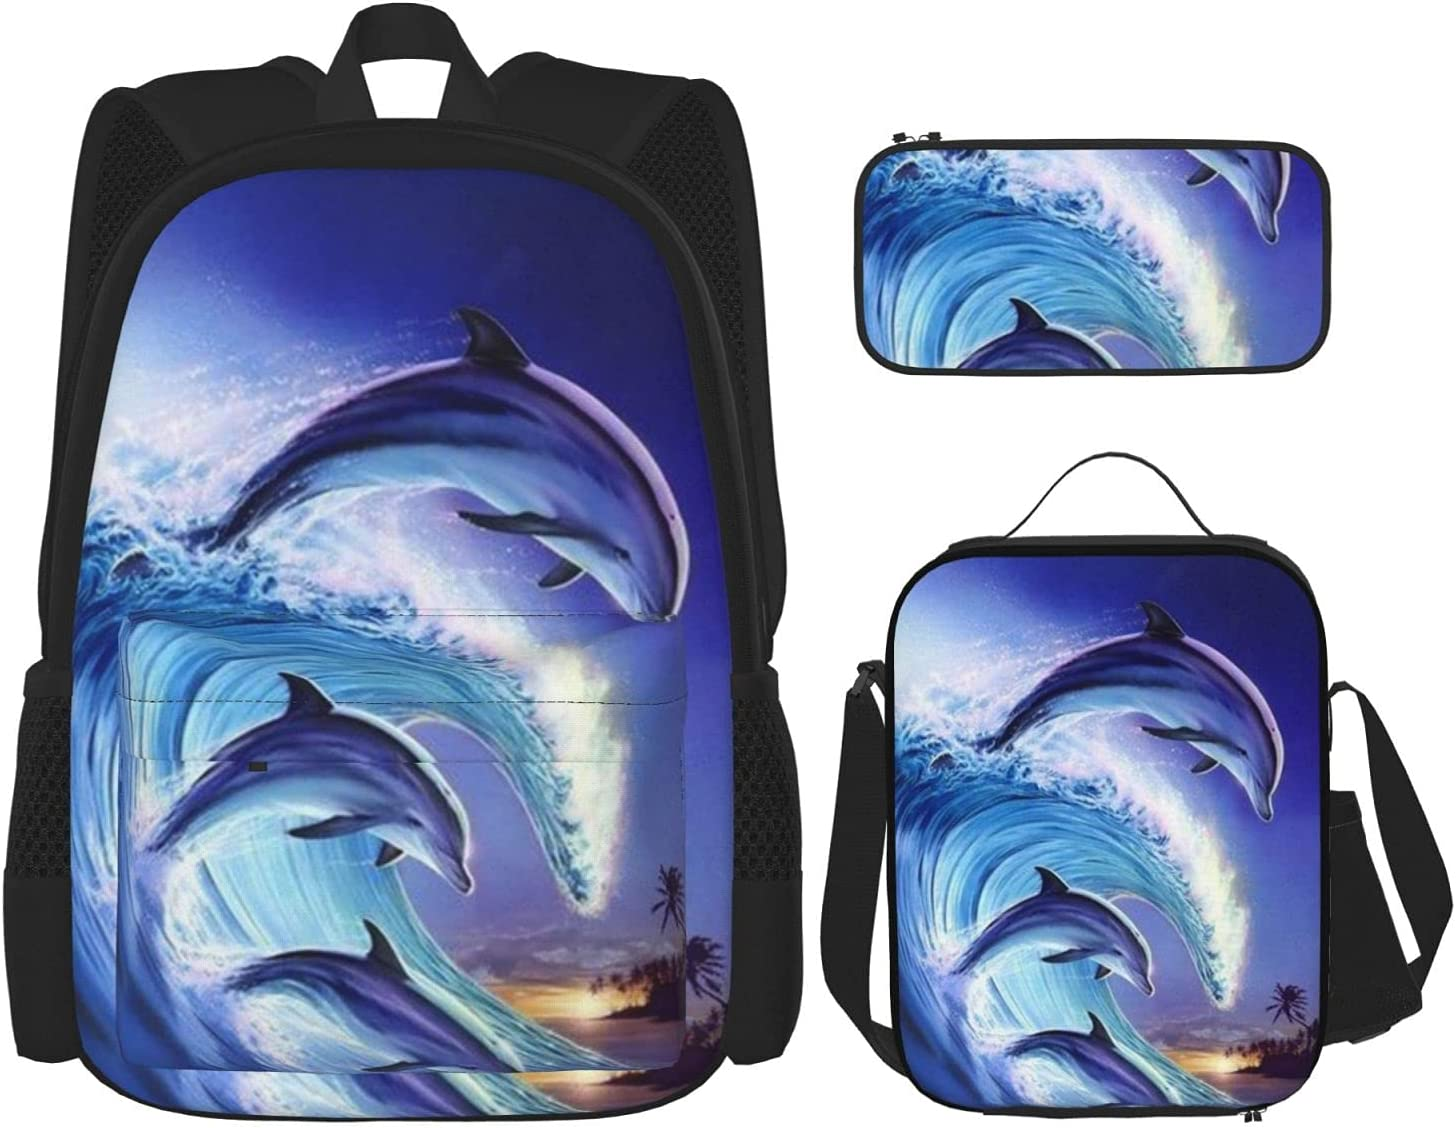 Outlet ☆ Free Shipping Dolphin Backpack Shoulder free Bags Bookbag with Bag Cas Pencil Lunch